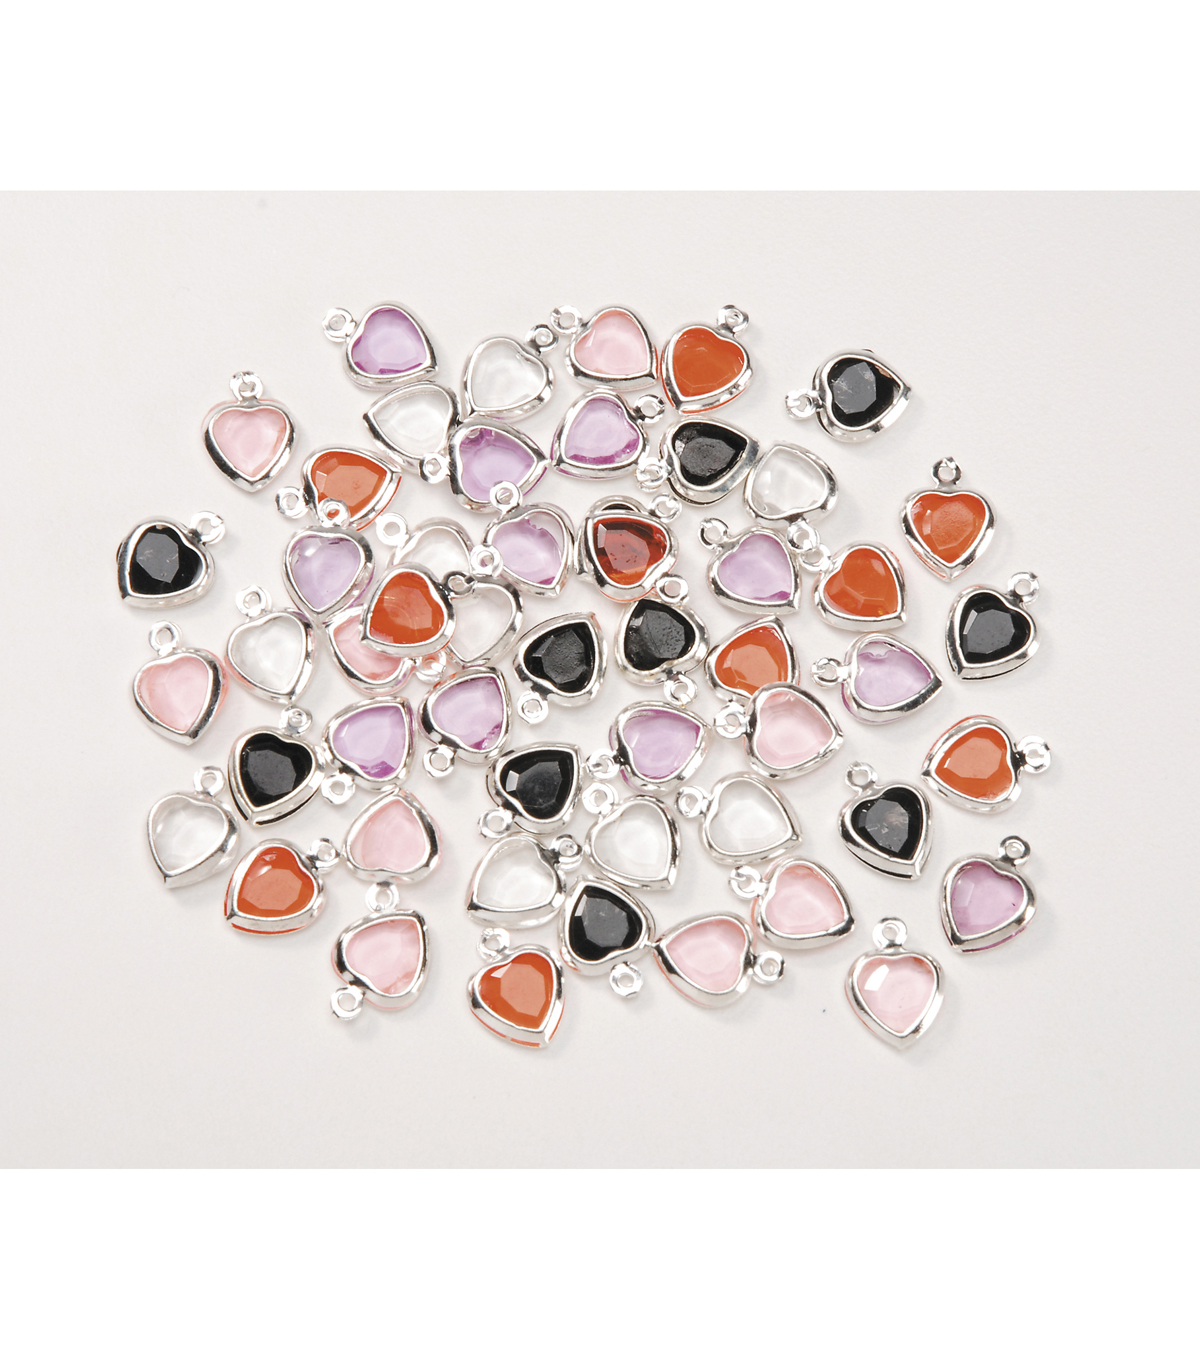 Acrylic Heart Shaped Charms, Assort. Colors, 8.8mm x 11.8mm, 50pcs/pkg